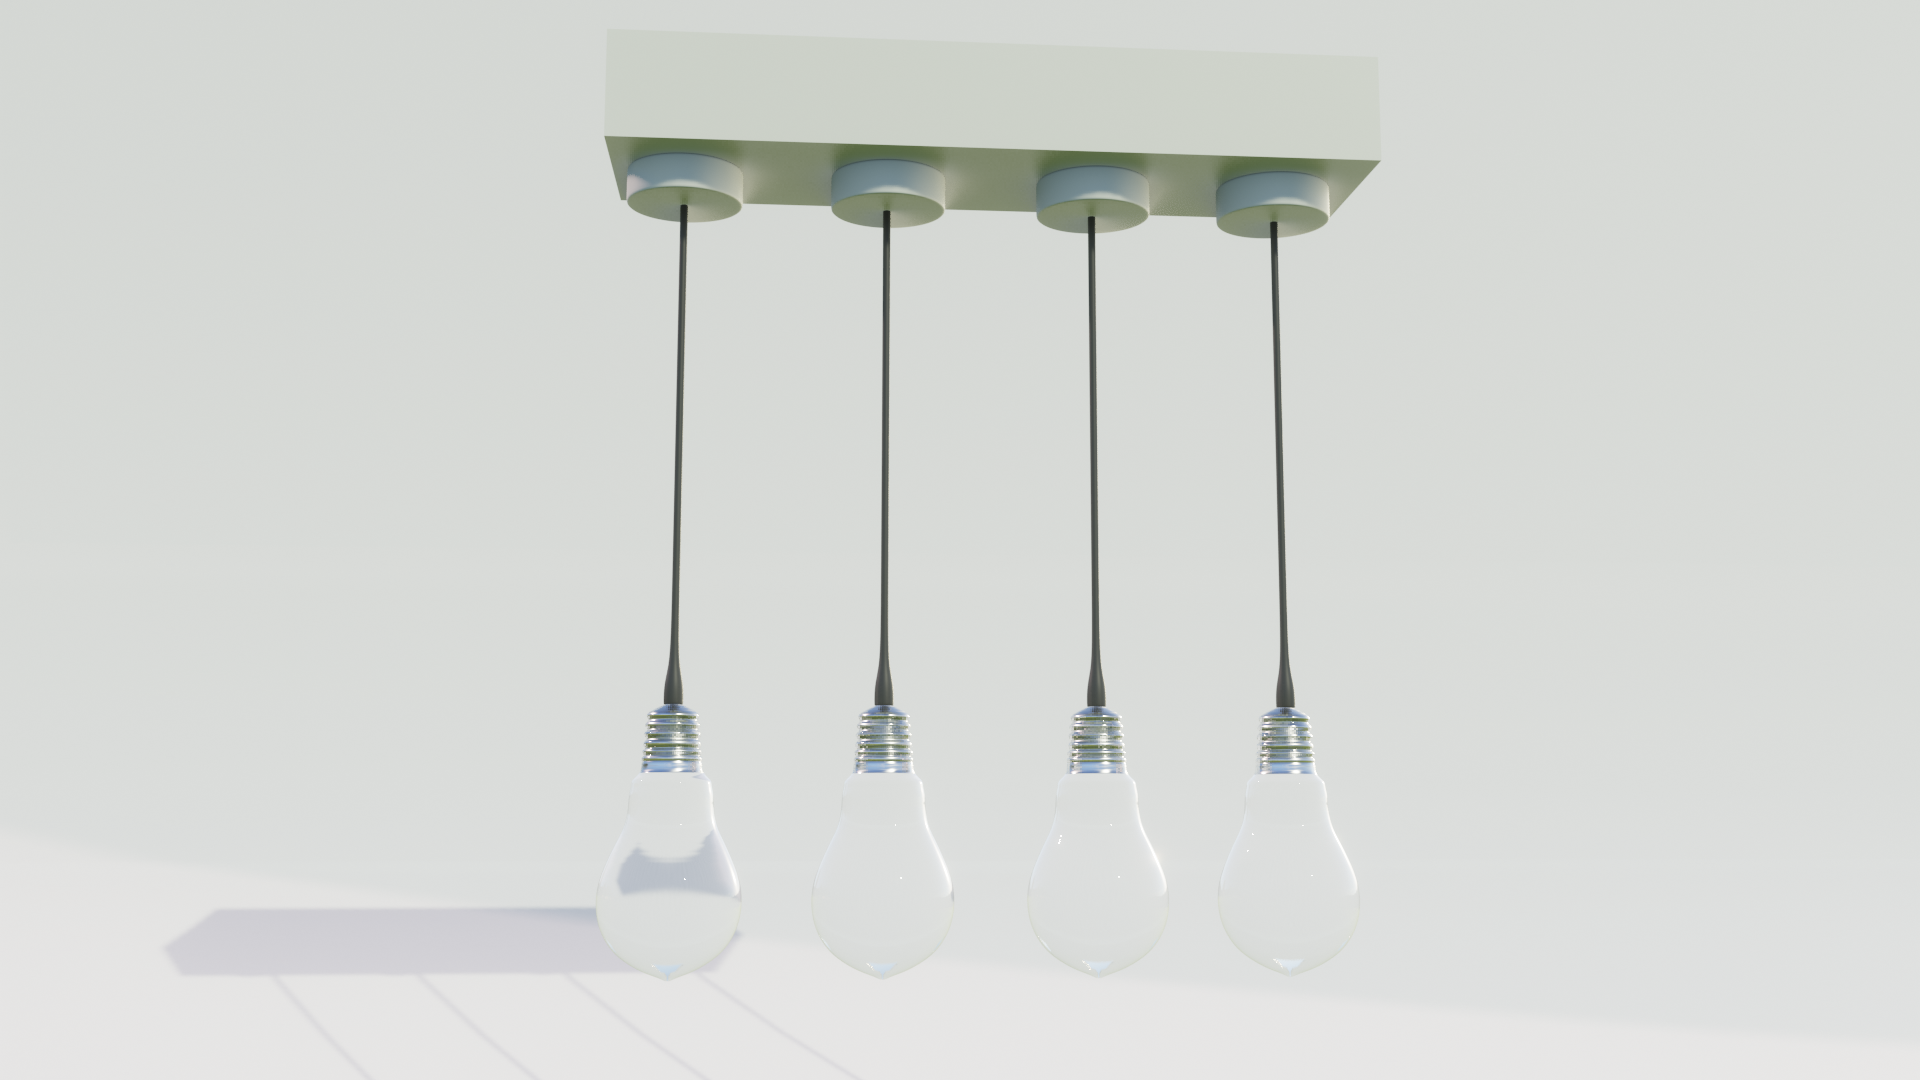 Modern Lamp (photorealistic) preview image 2